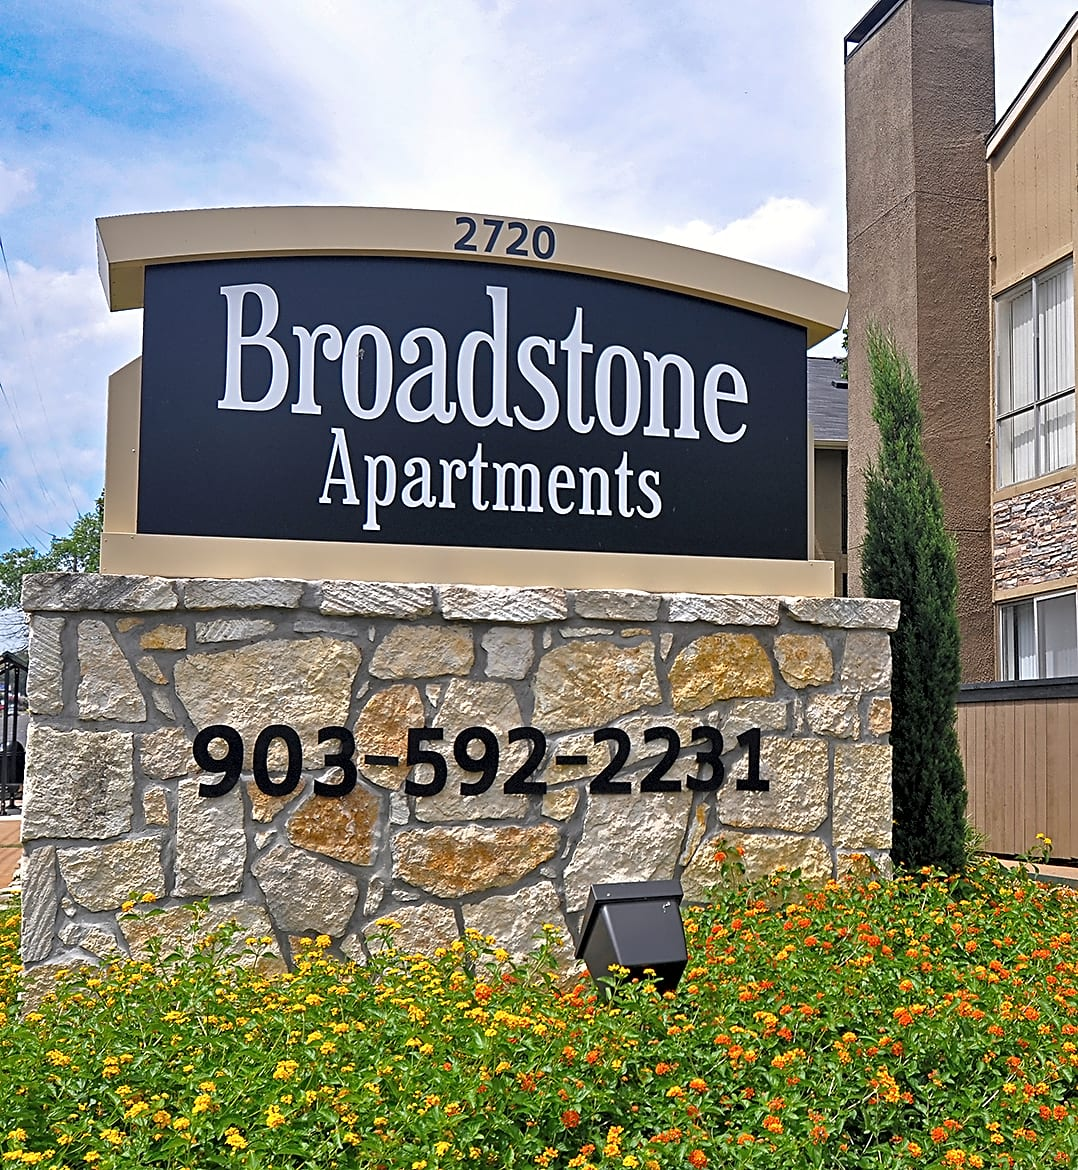 Search For Apartments By Zip Code: Broadstone Apartments